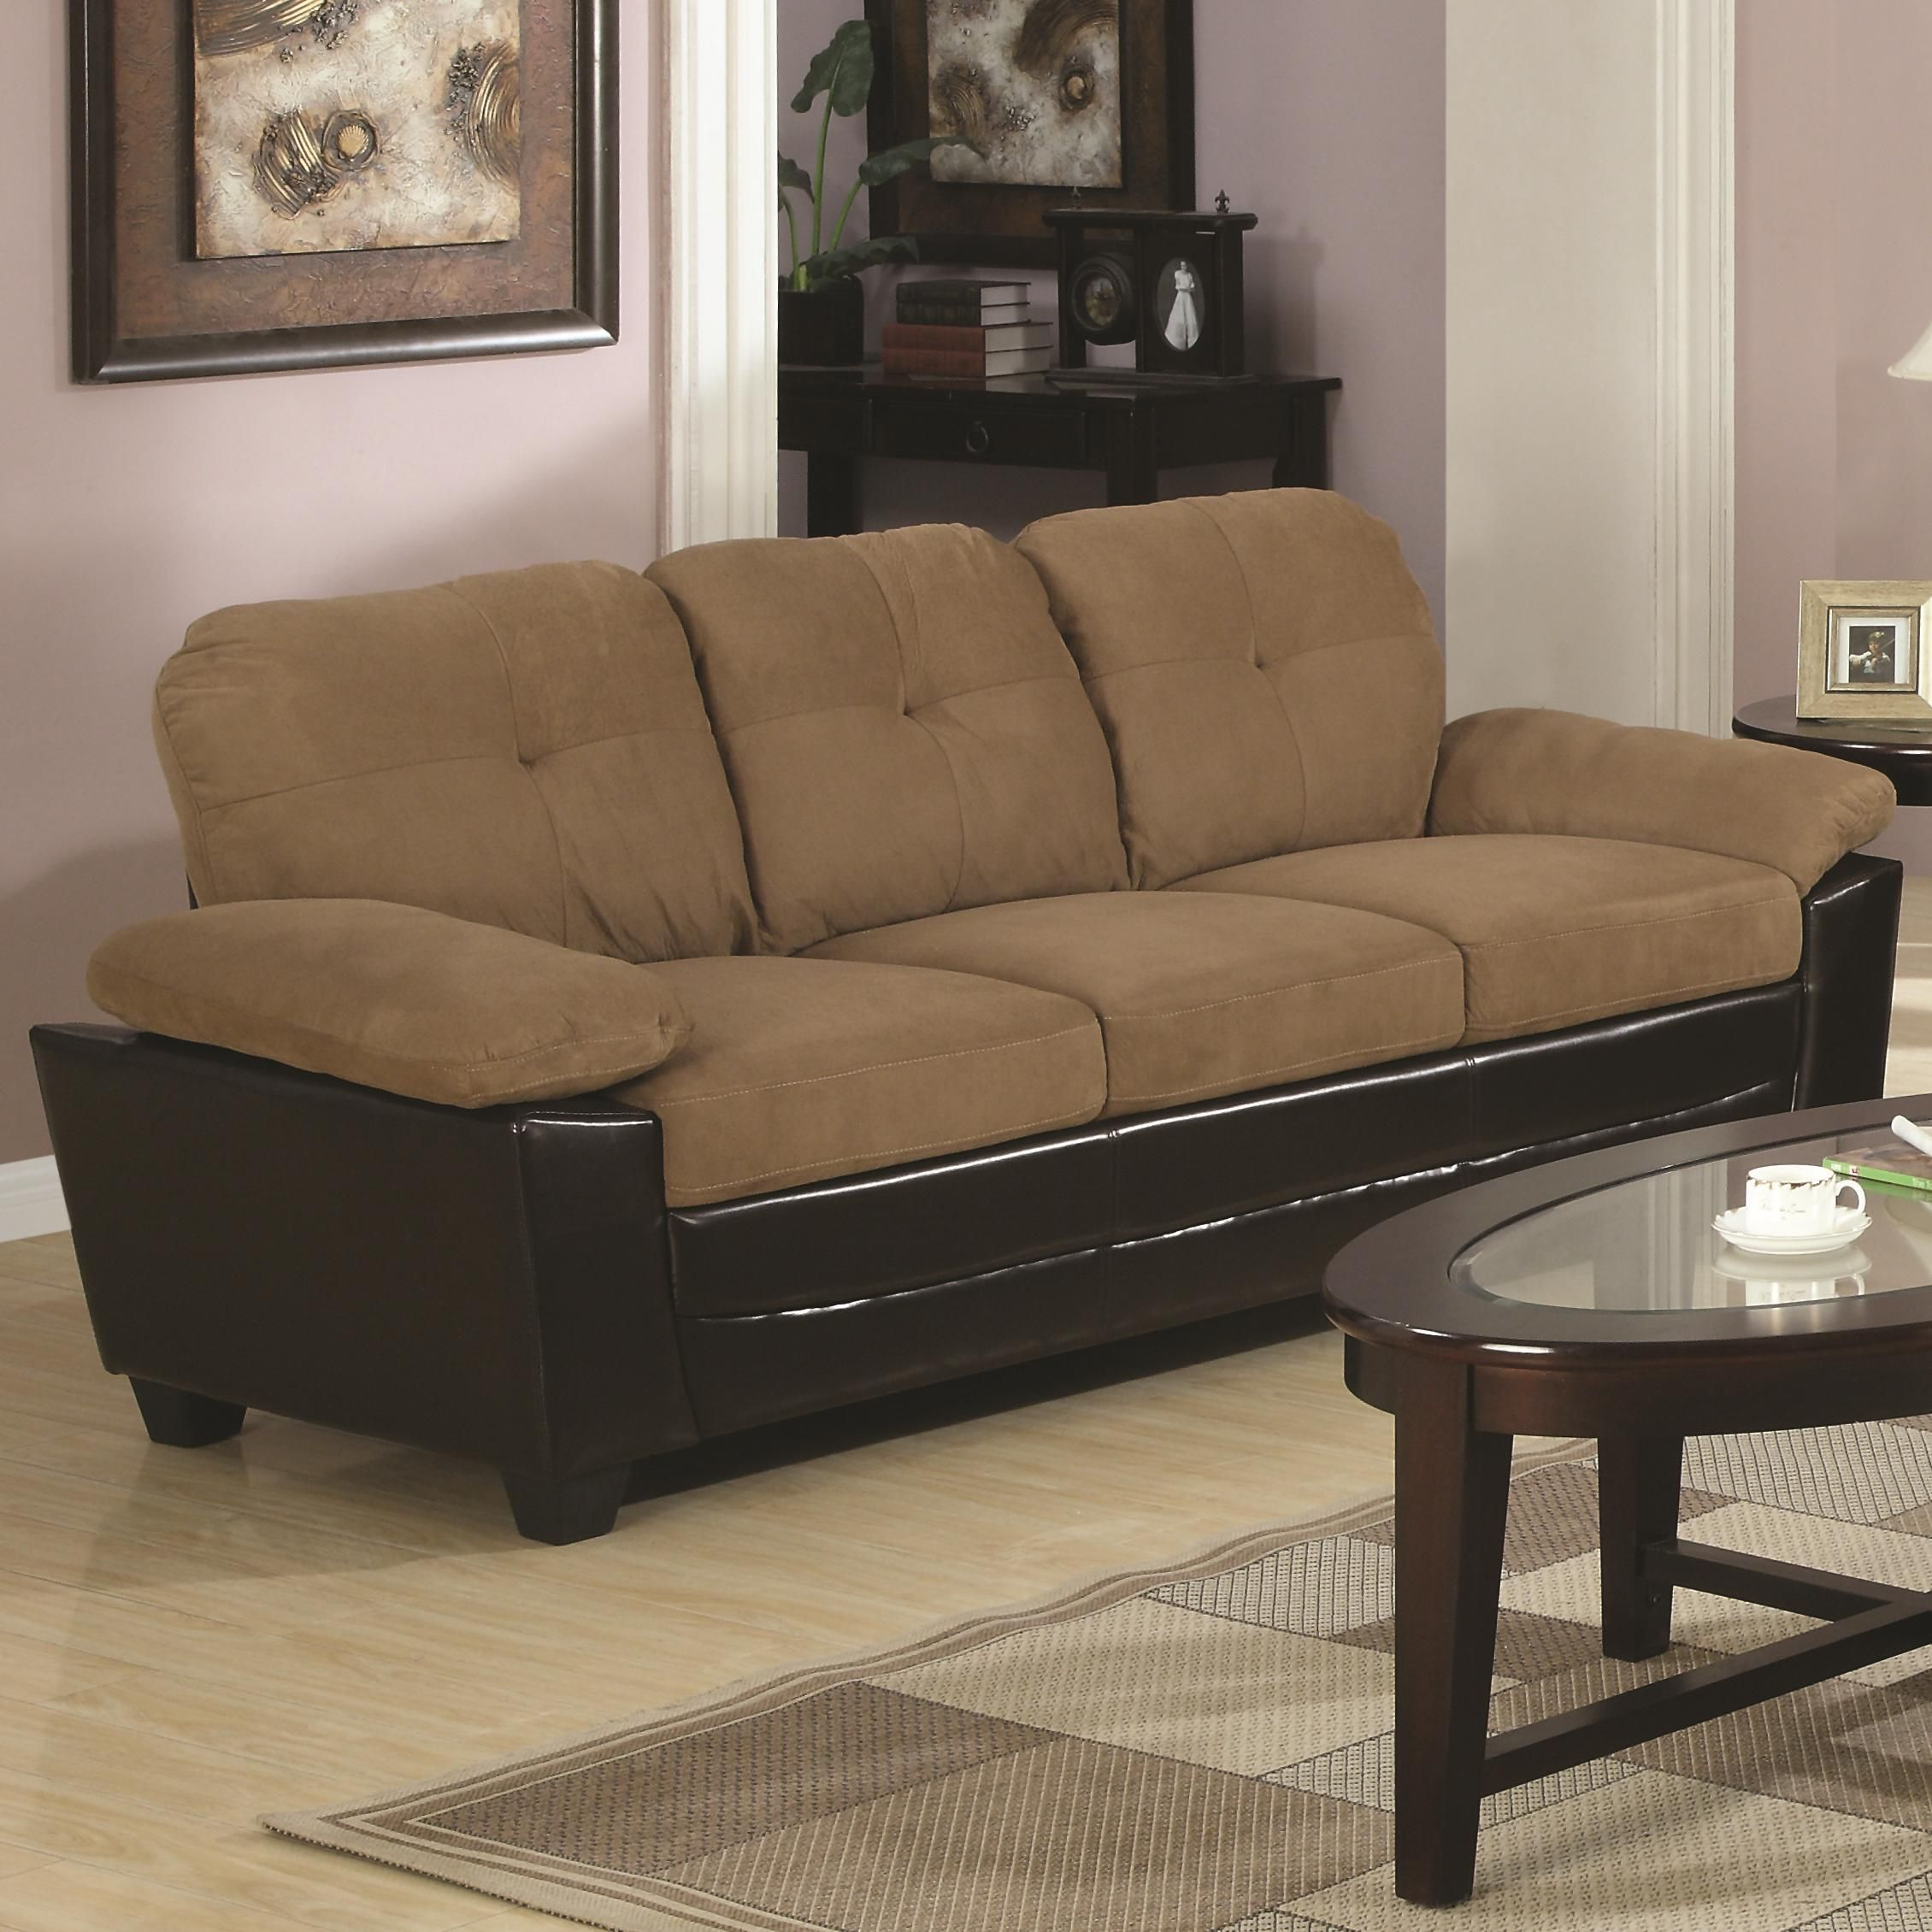 Coaster Mika Storage Sofa In Beige Microfiber